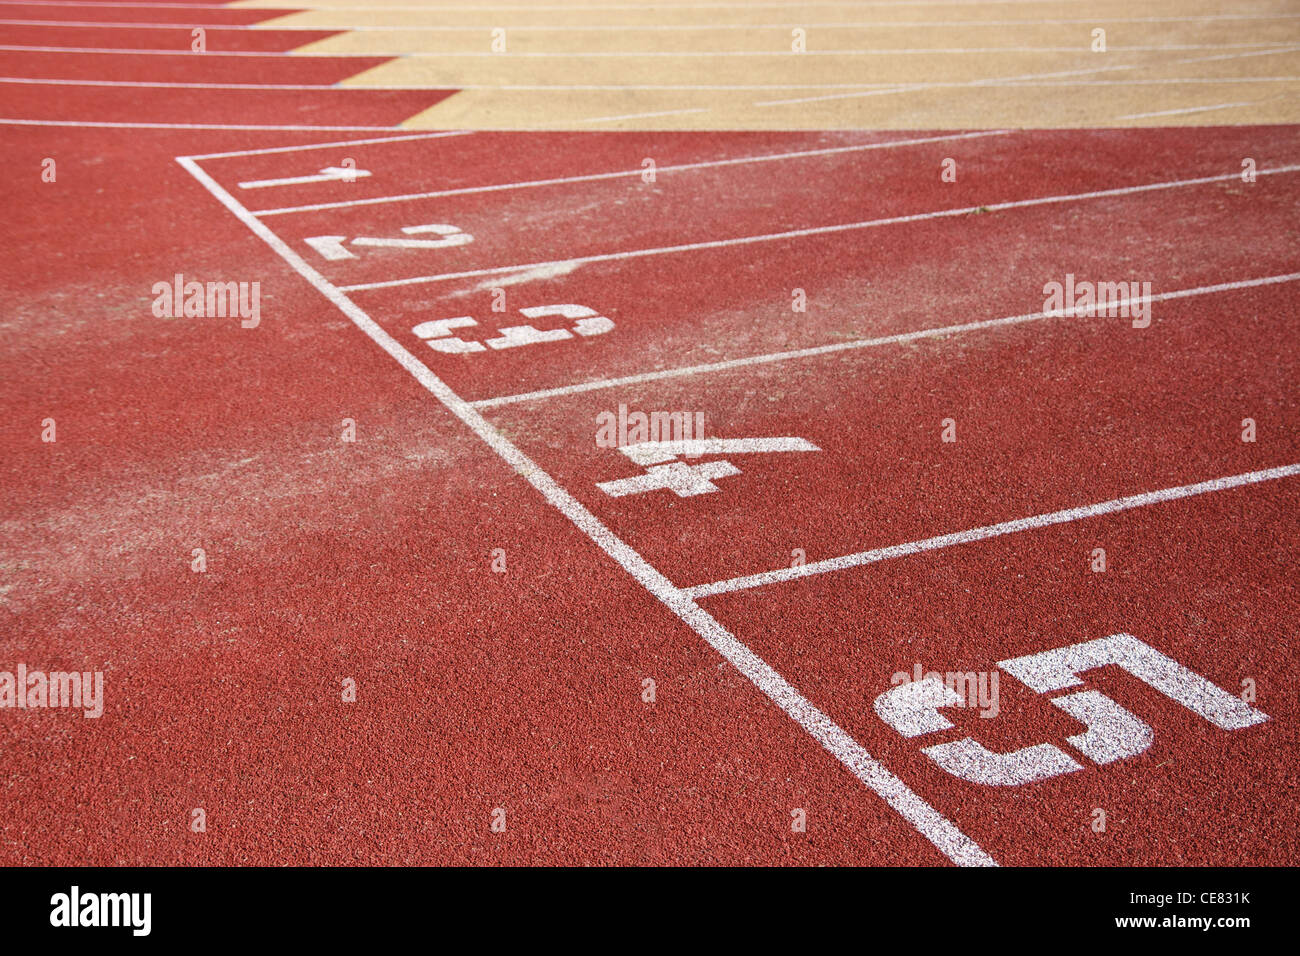 Running track lines with starting numbers - Stock Image